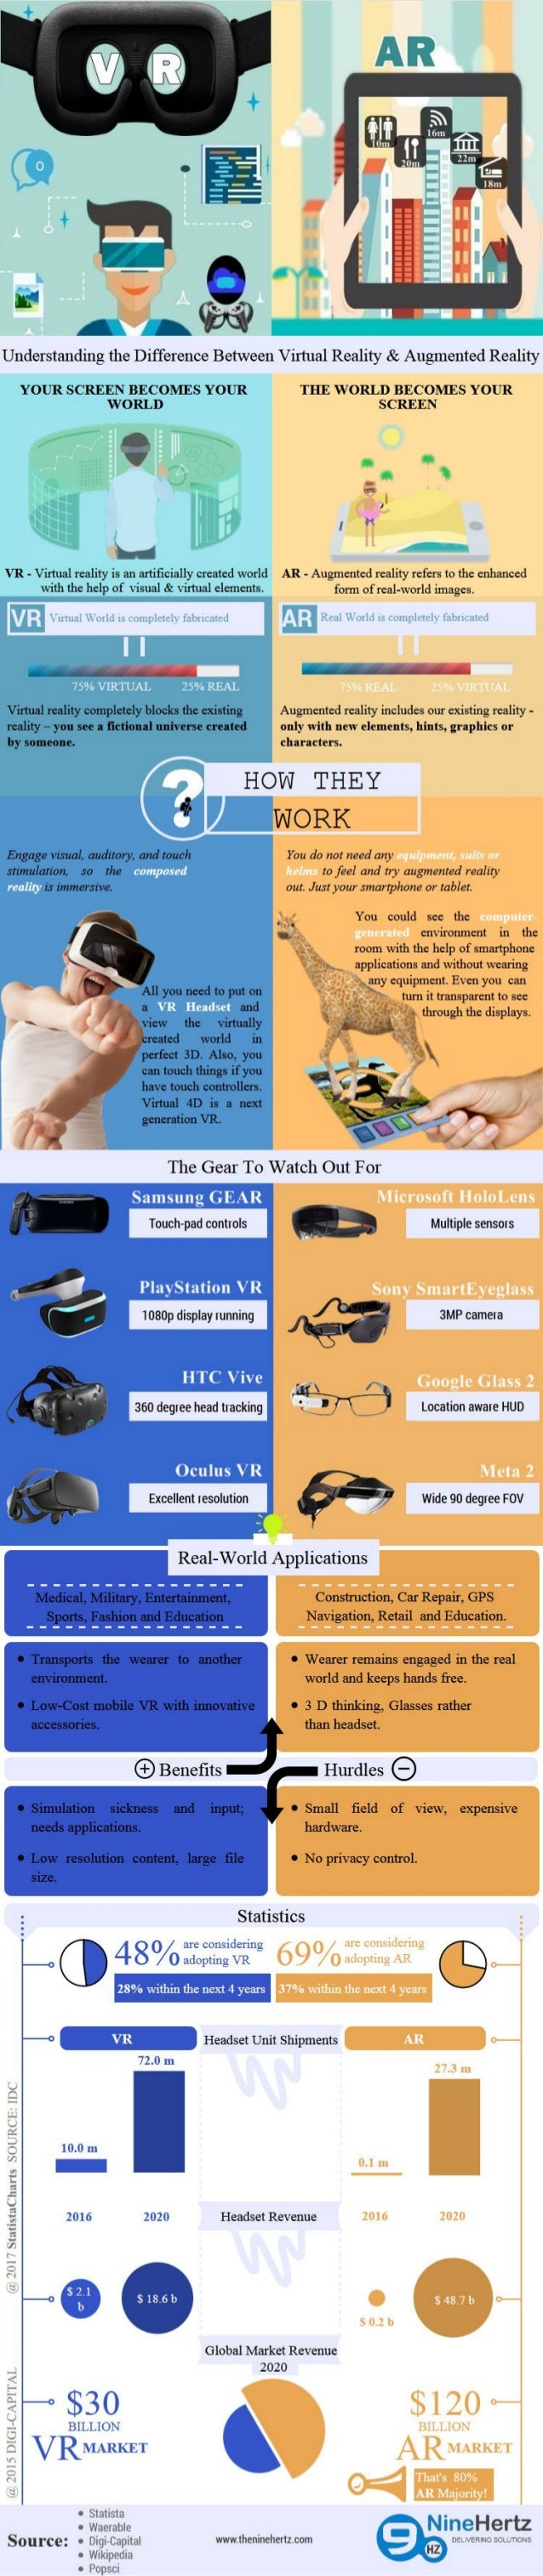 Difference between Augmented Reality & Virtual Reality